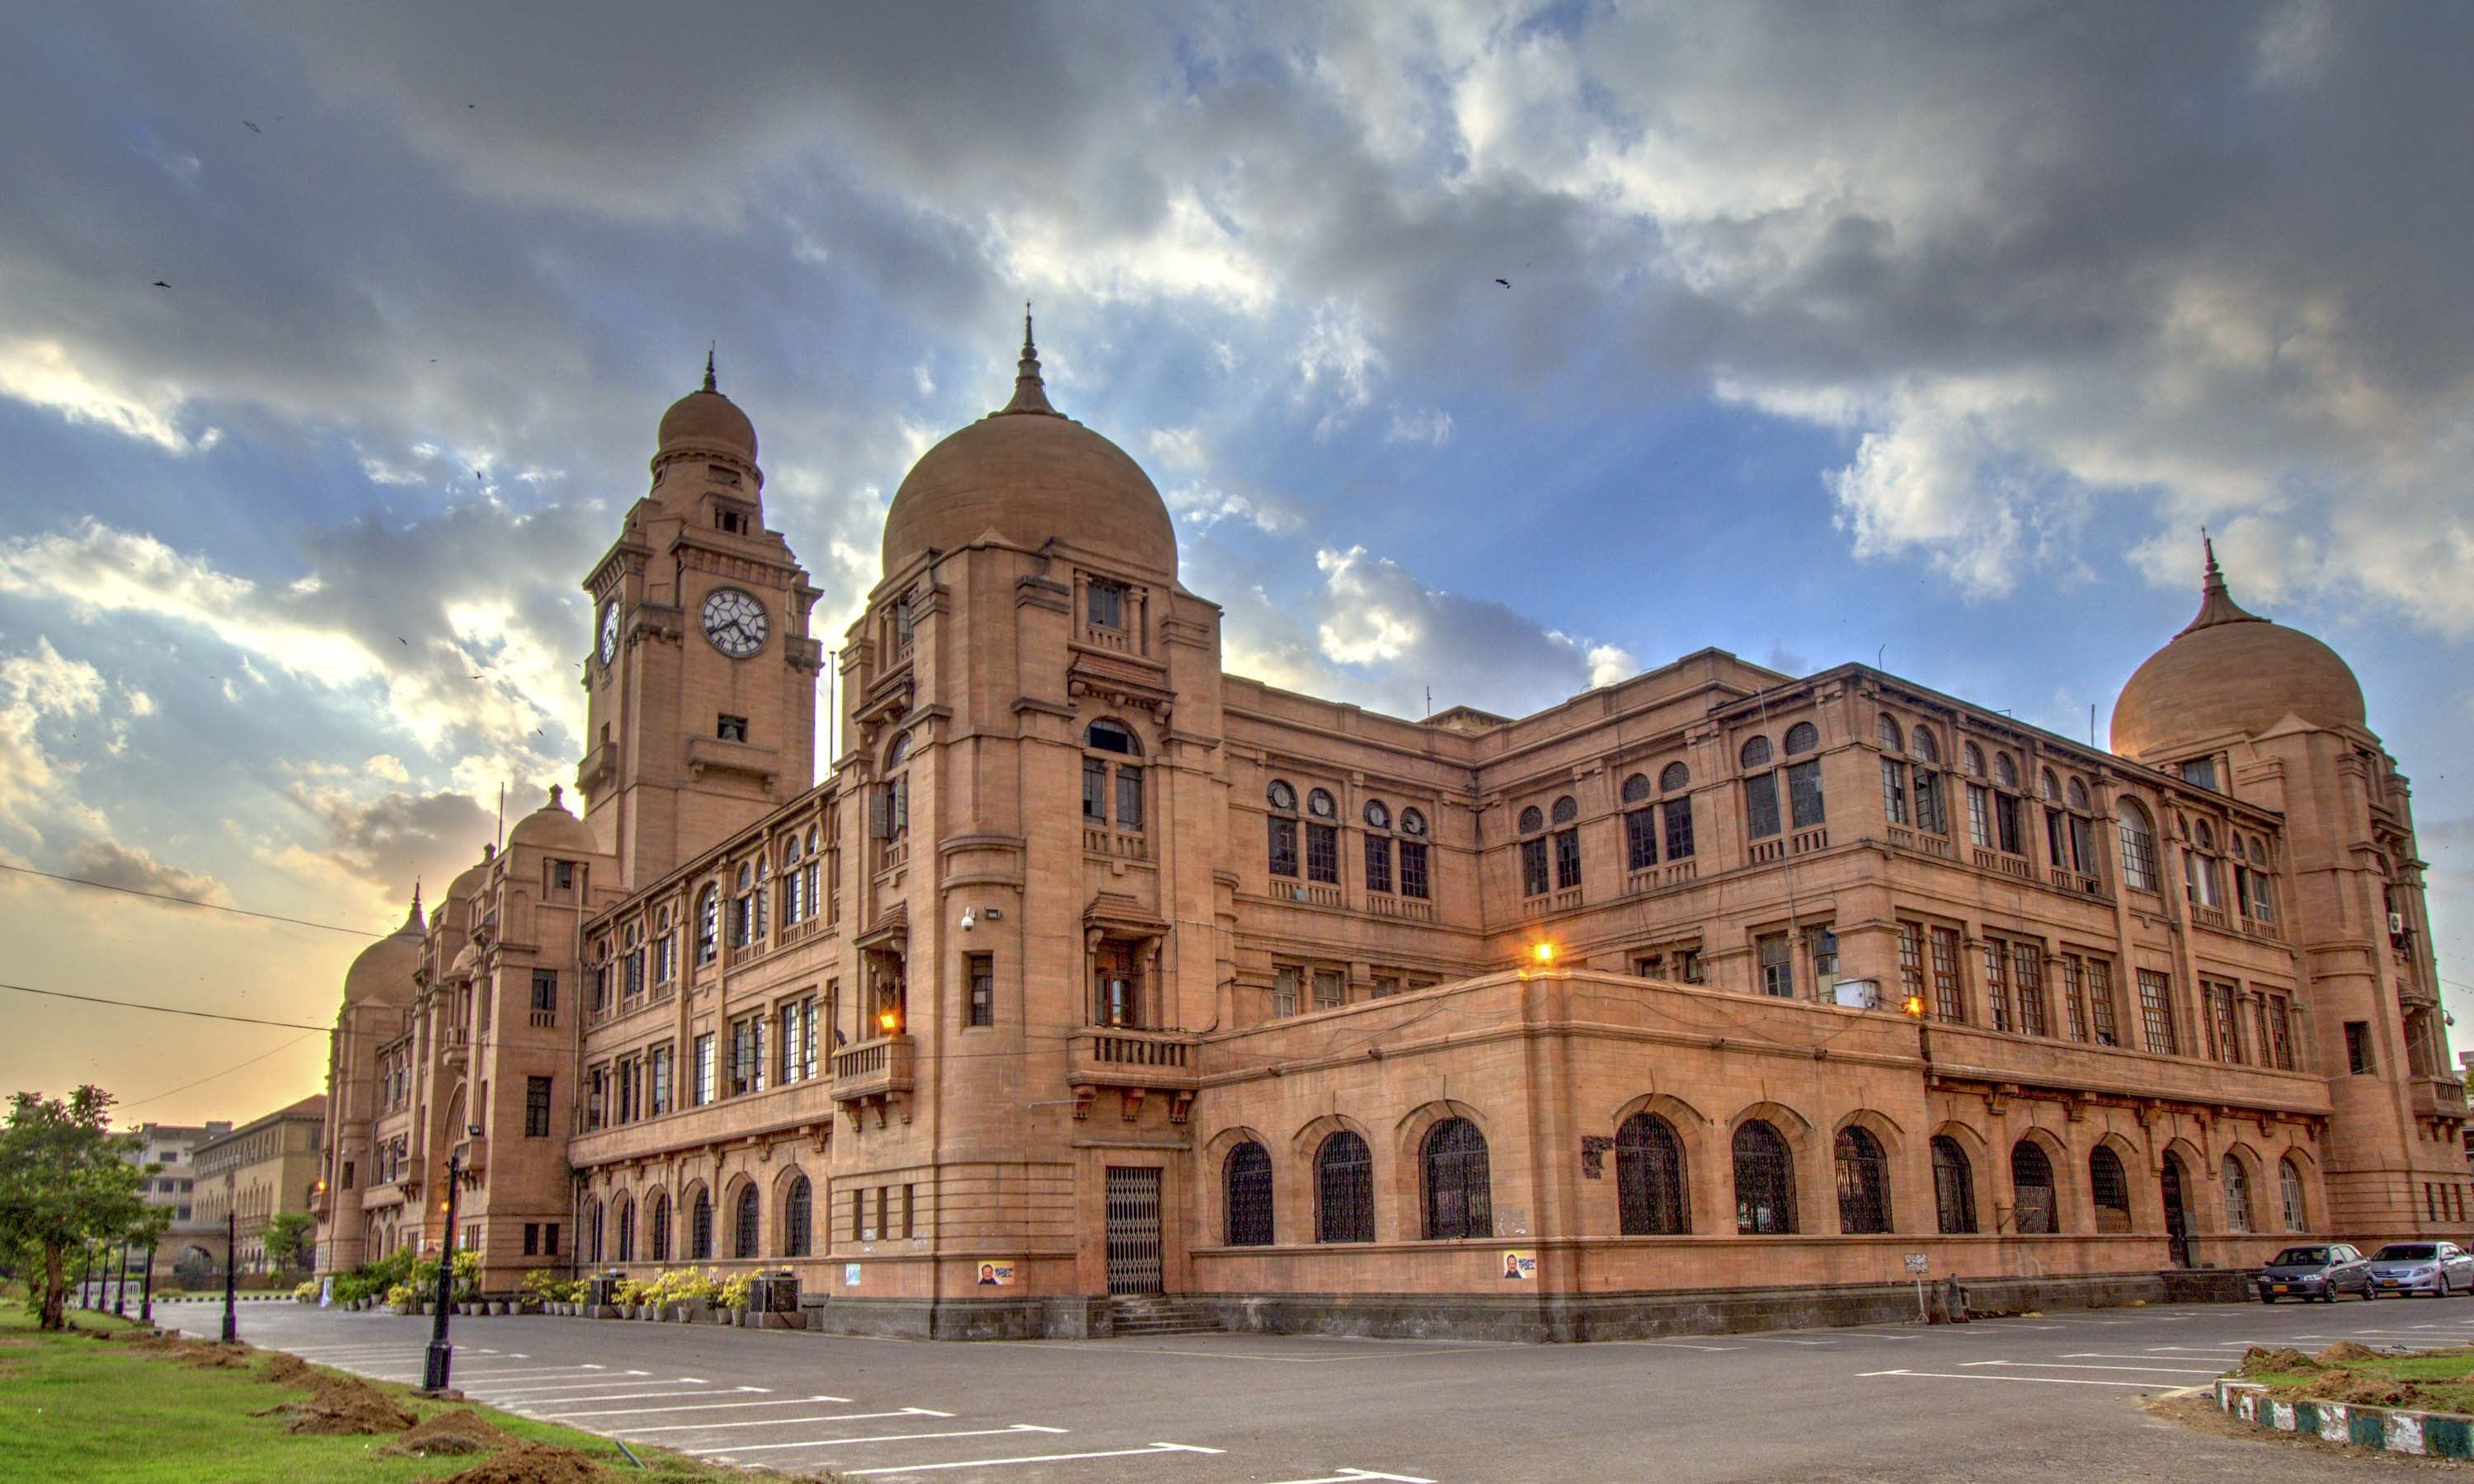 Karachi Municipal Corporation Building — Ali Raza Khatri